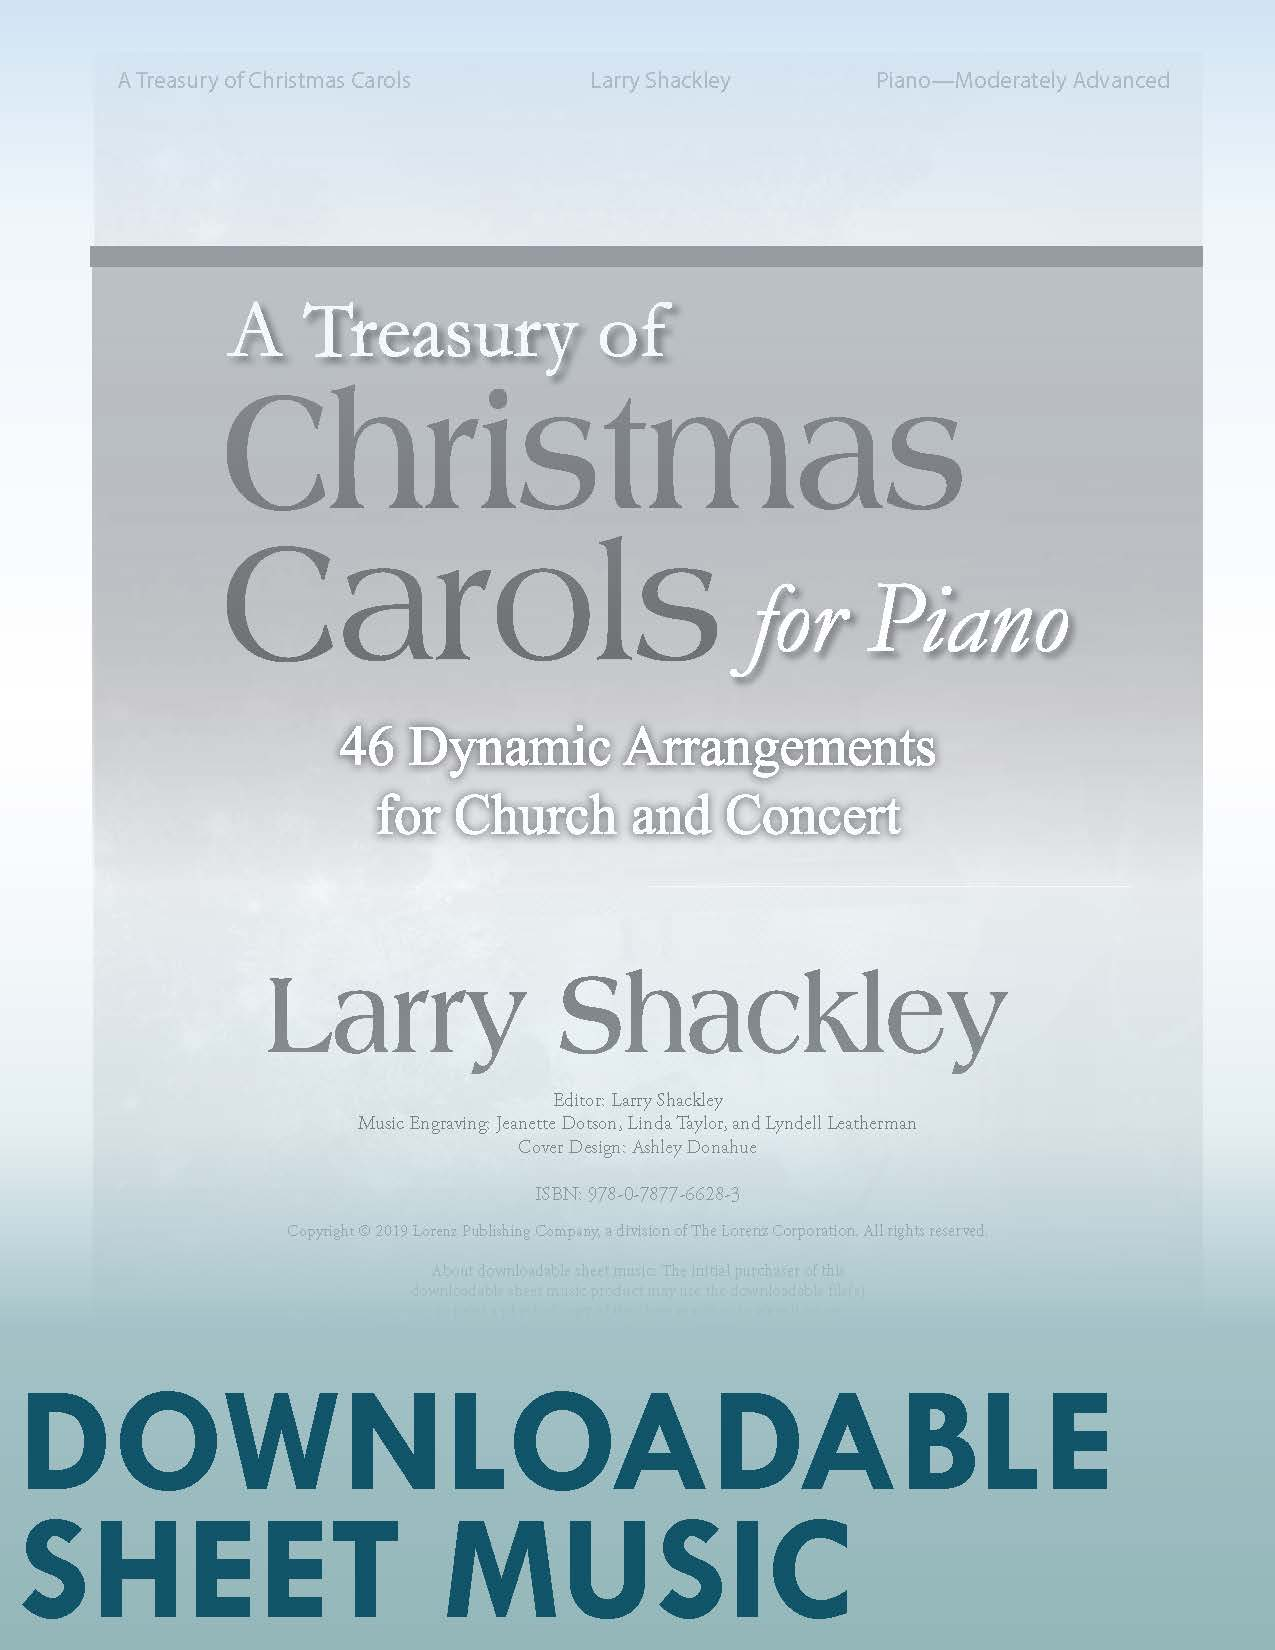 A Treasury of Christmas Carols for Piano - Digital Download